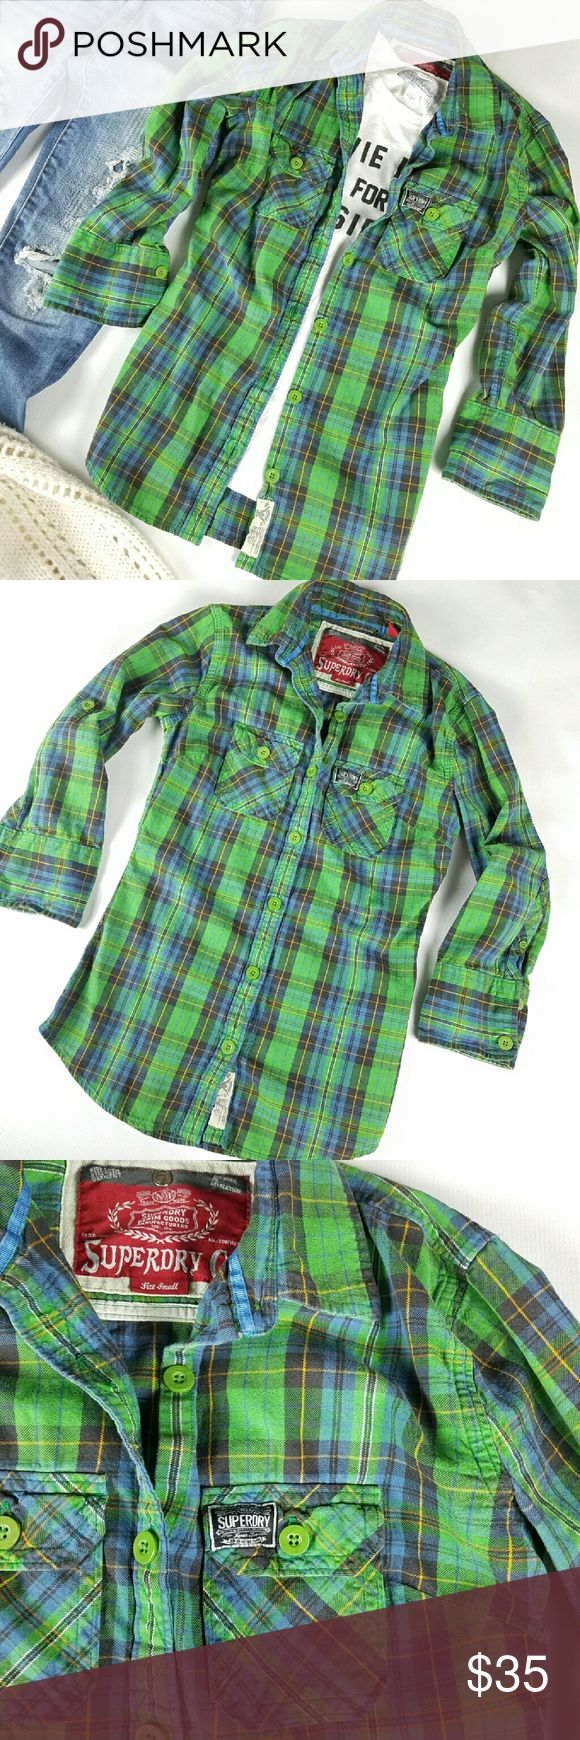 Super Dry Plaid Button Down Top Vibrant plaid button down top. Thick material. Double chest pockets. Sleeve can be rolled and secured with buttons. This has a flattering, slim fit. True to size. 100% Cotton.   Excellent gently preloved condition with no rips, holes or stains.   No holds, trades or off-posh transactions. Superdry Tops Button Down Shirts